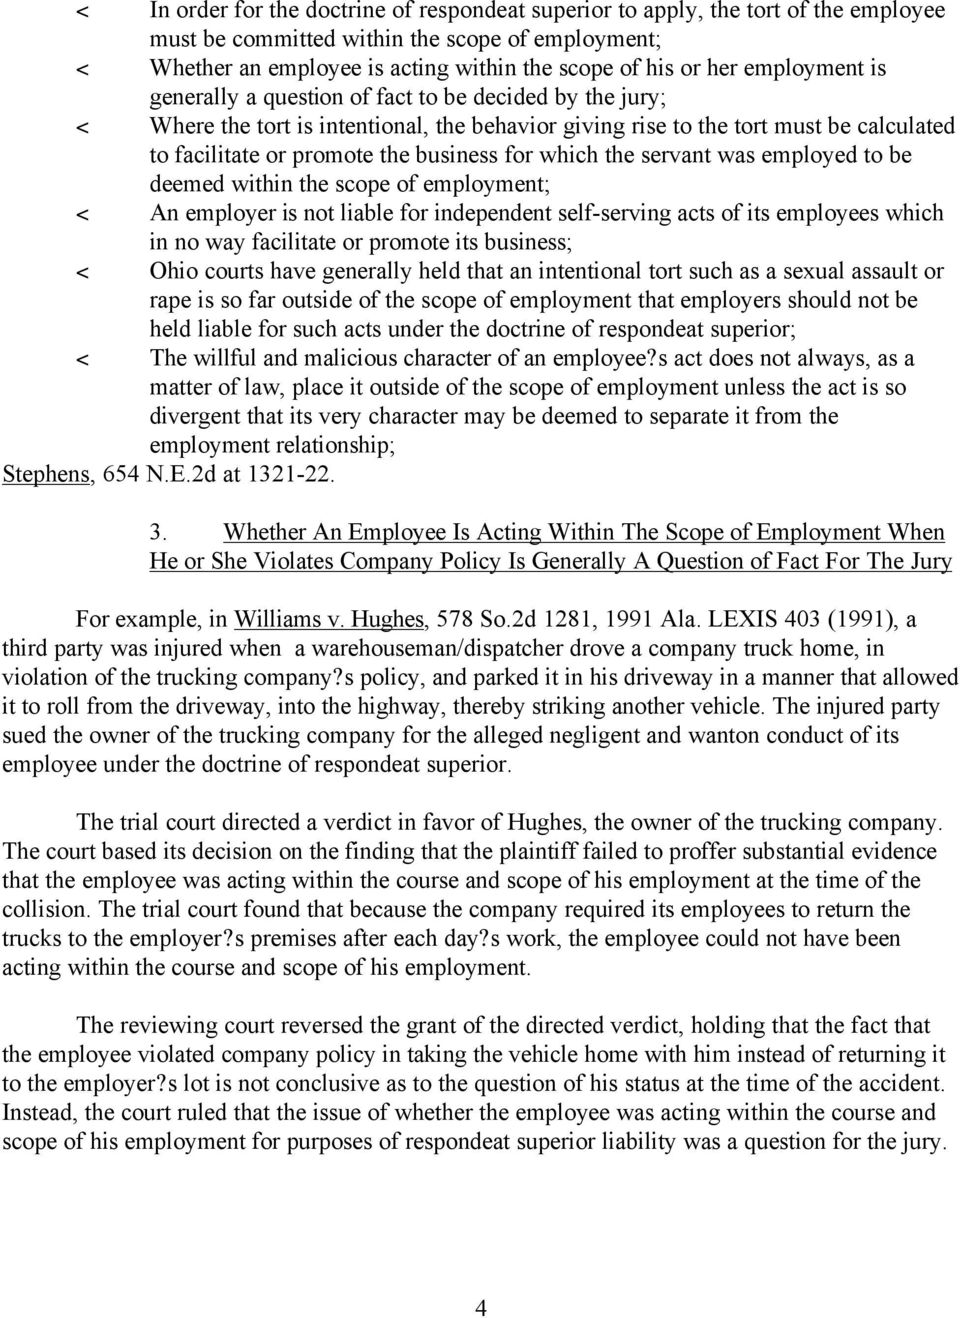 for which the servant was employed to be deemed within the scope of employment; < An employer is not liable for independent self-serving acts of its employees which in no way facilitate or promote